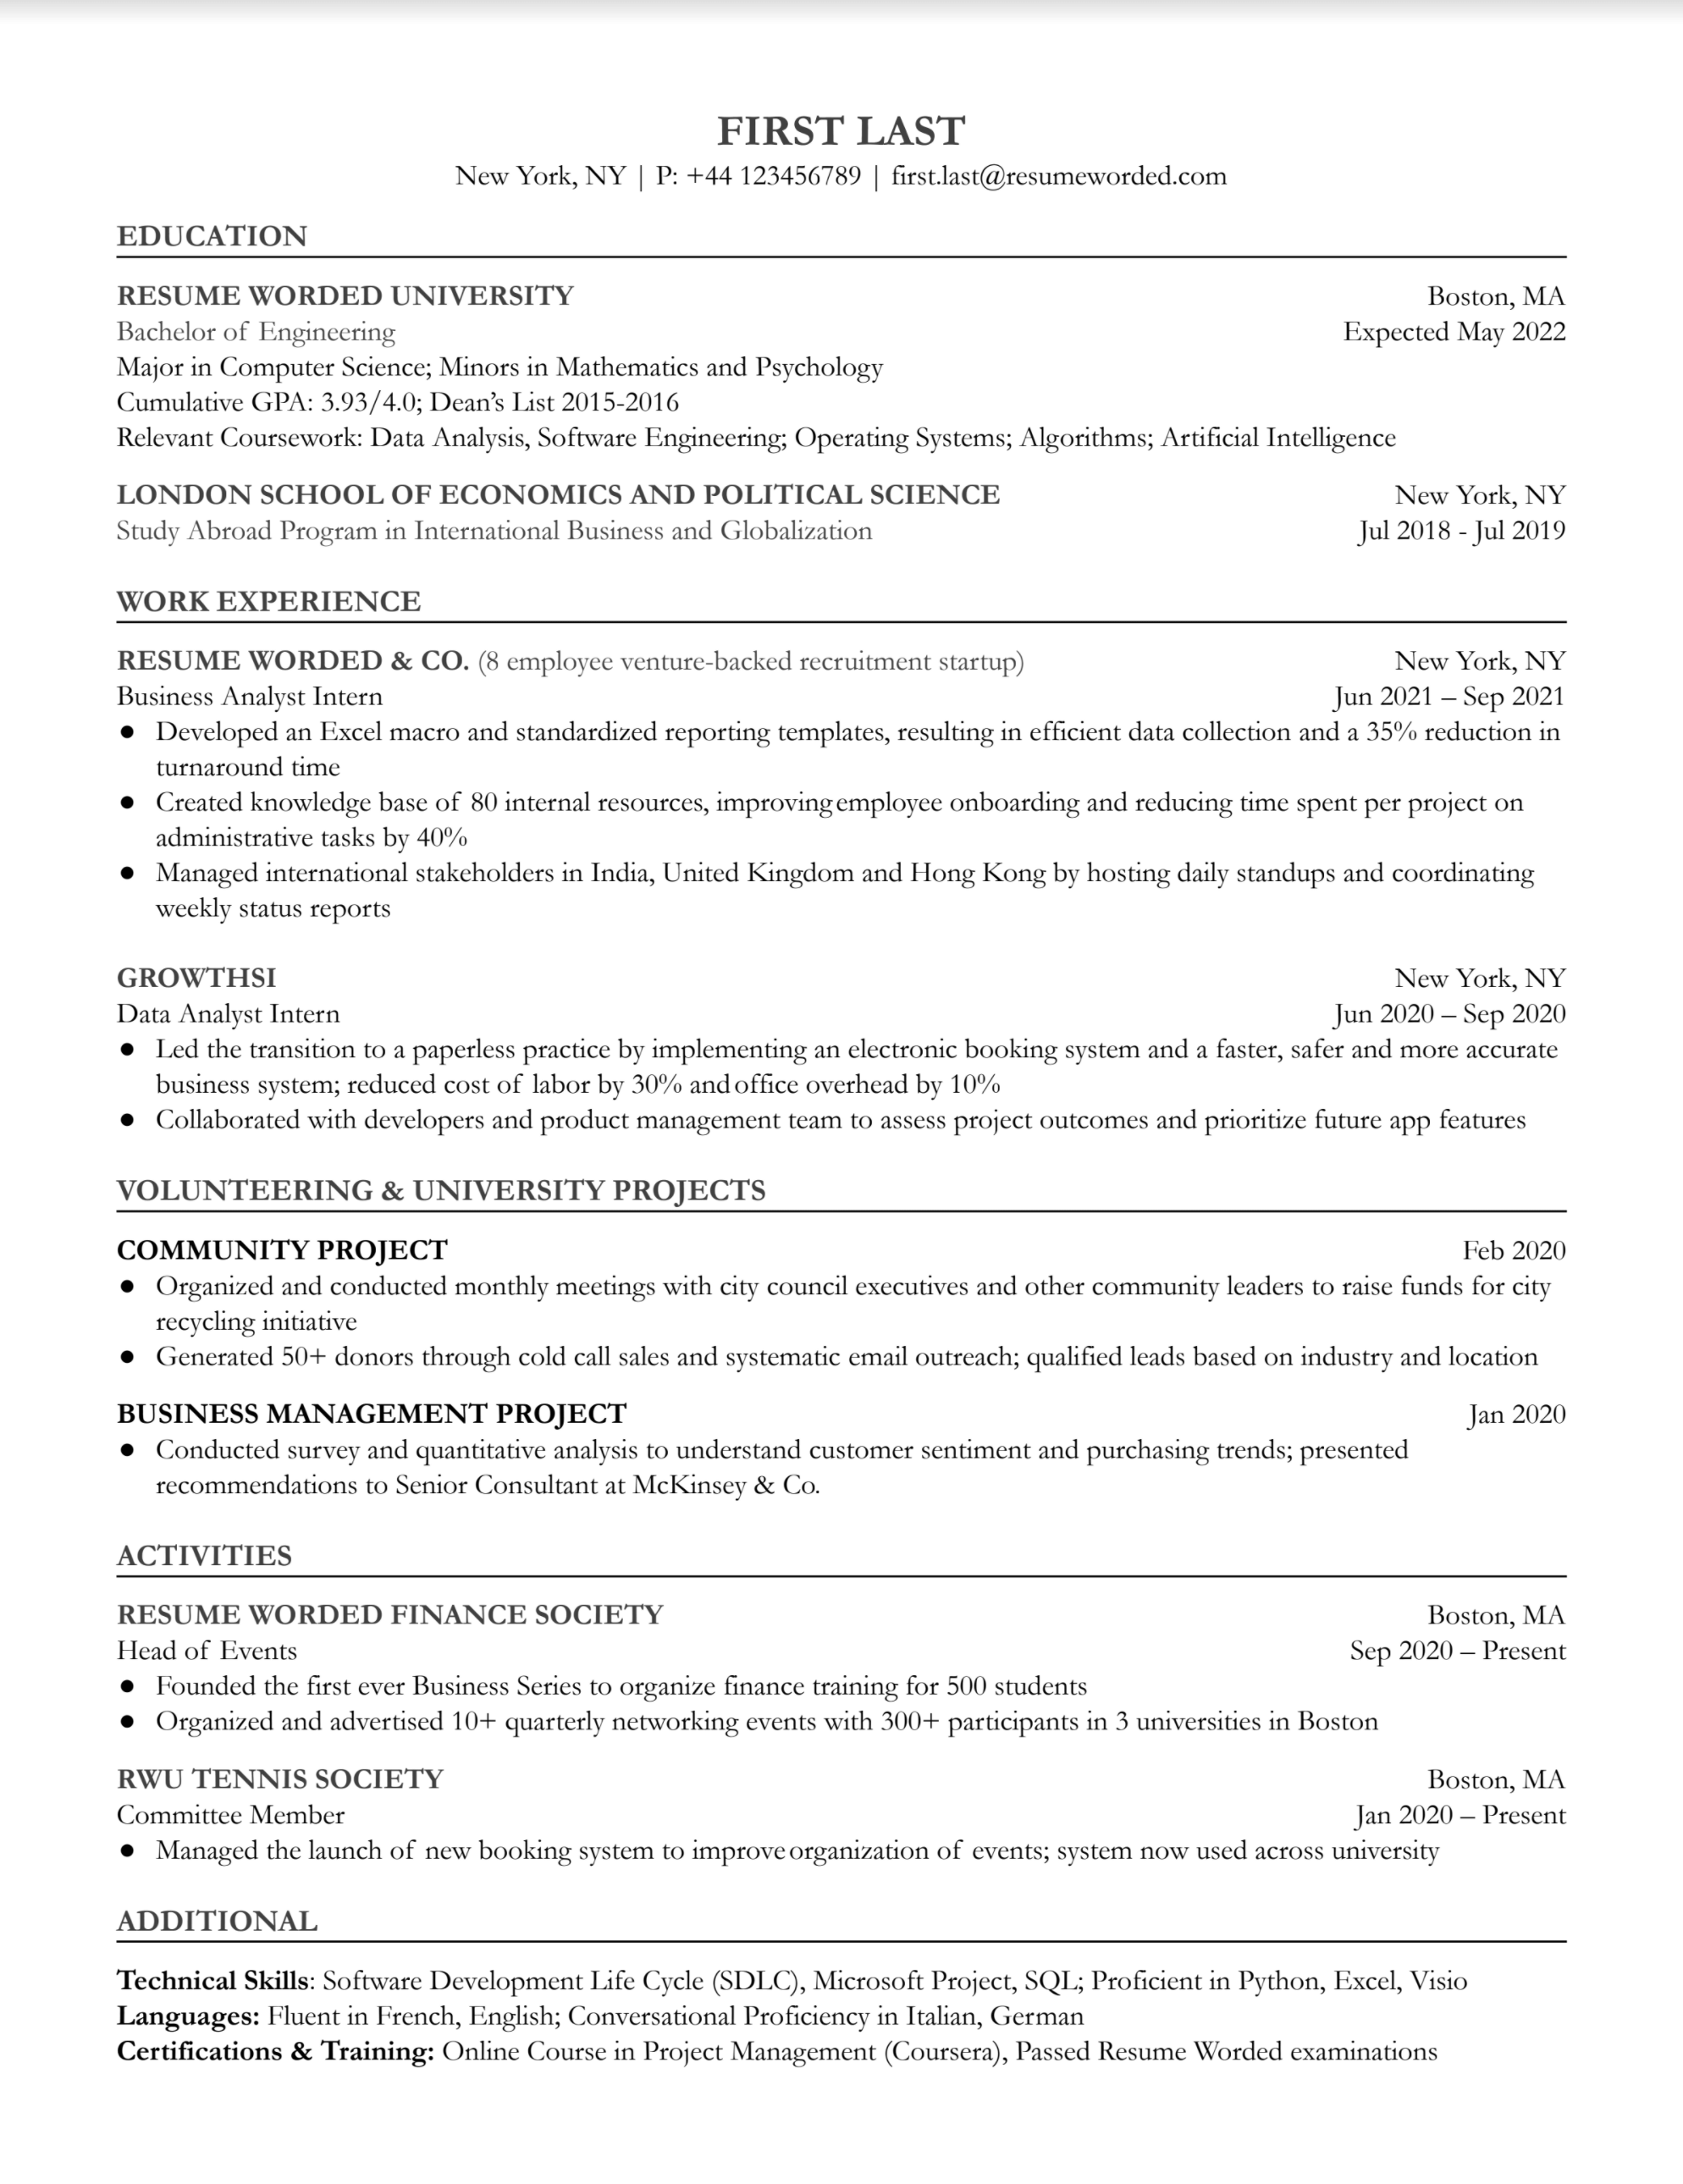 Entry level business analyst resume with education history, internship experience, and relevant projects